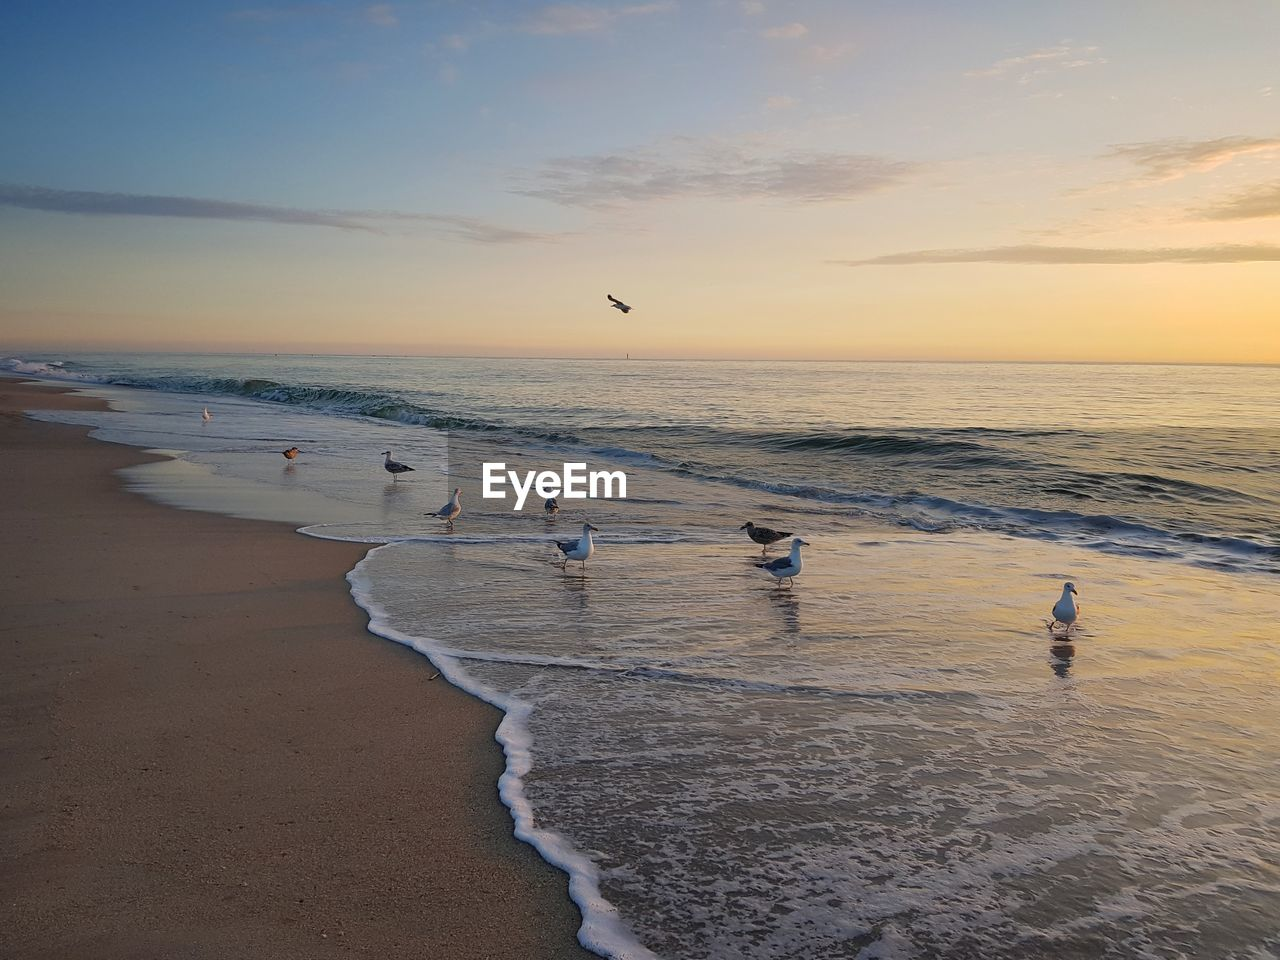 sea, water, beach, sky, sunset, land, horizon, horizon over water, beauty in nature, scenics - nature, sand, group of people, real people, nature, wave, motion, bird, sport, cloud - sky, outdoors